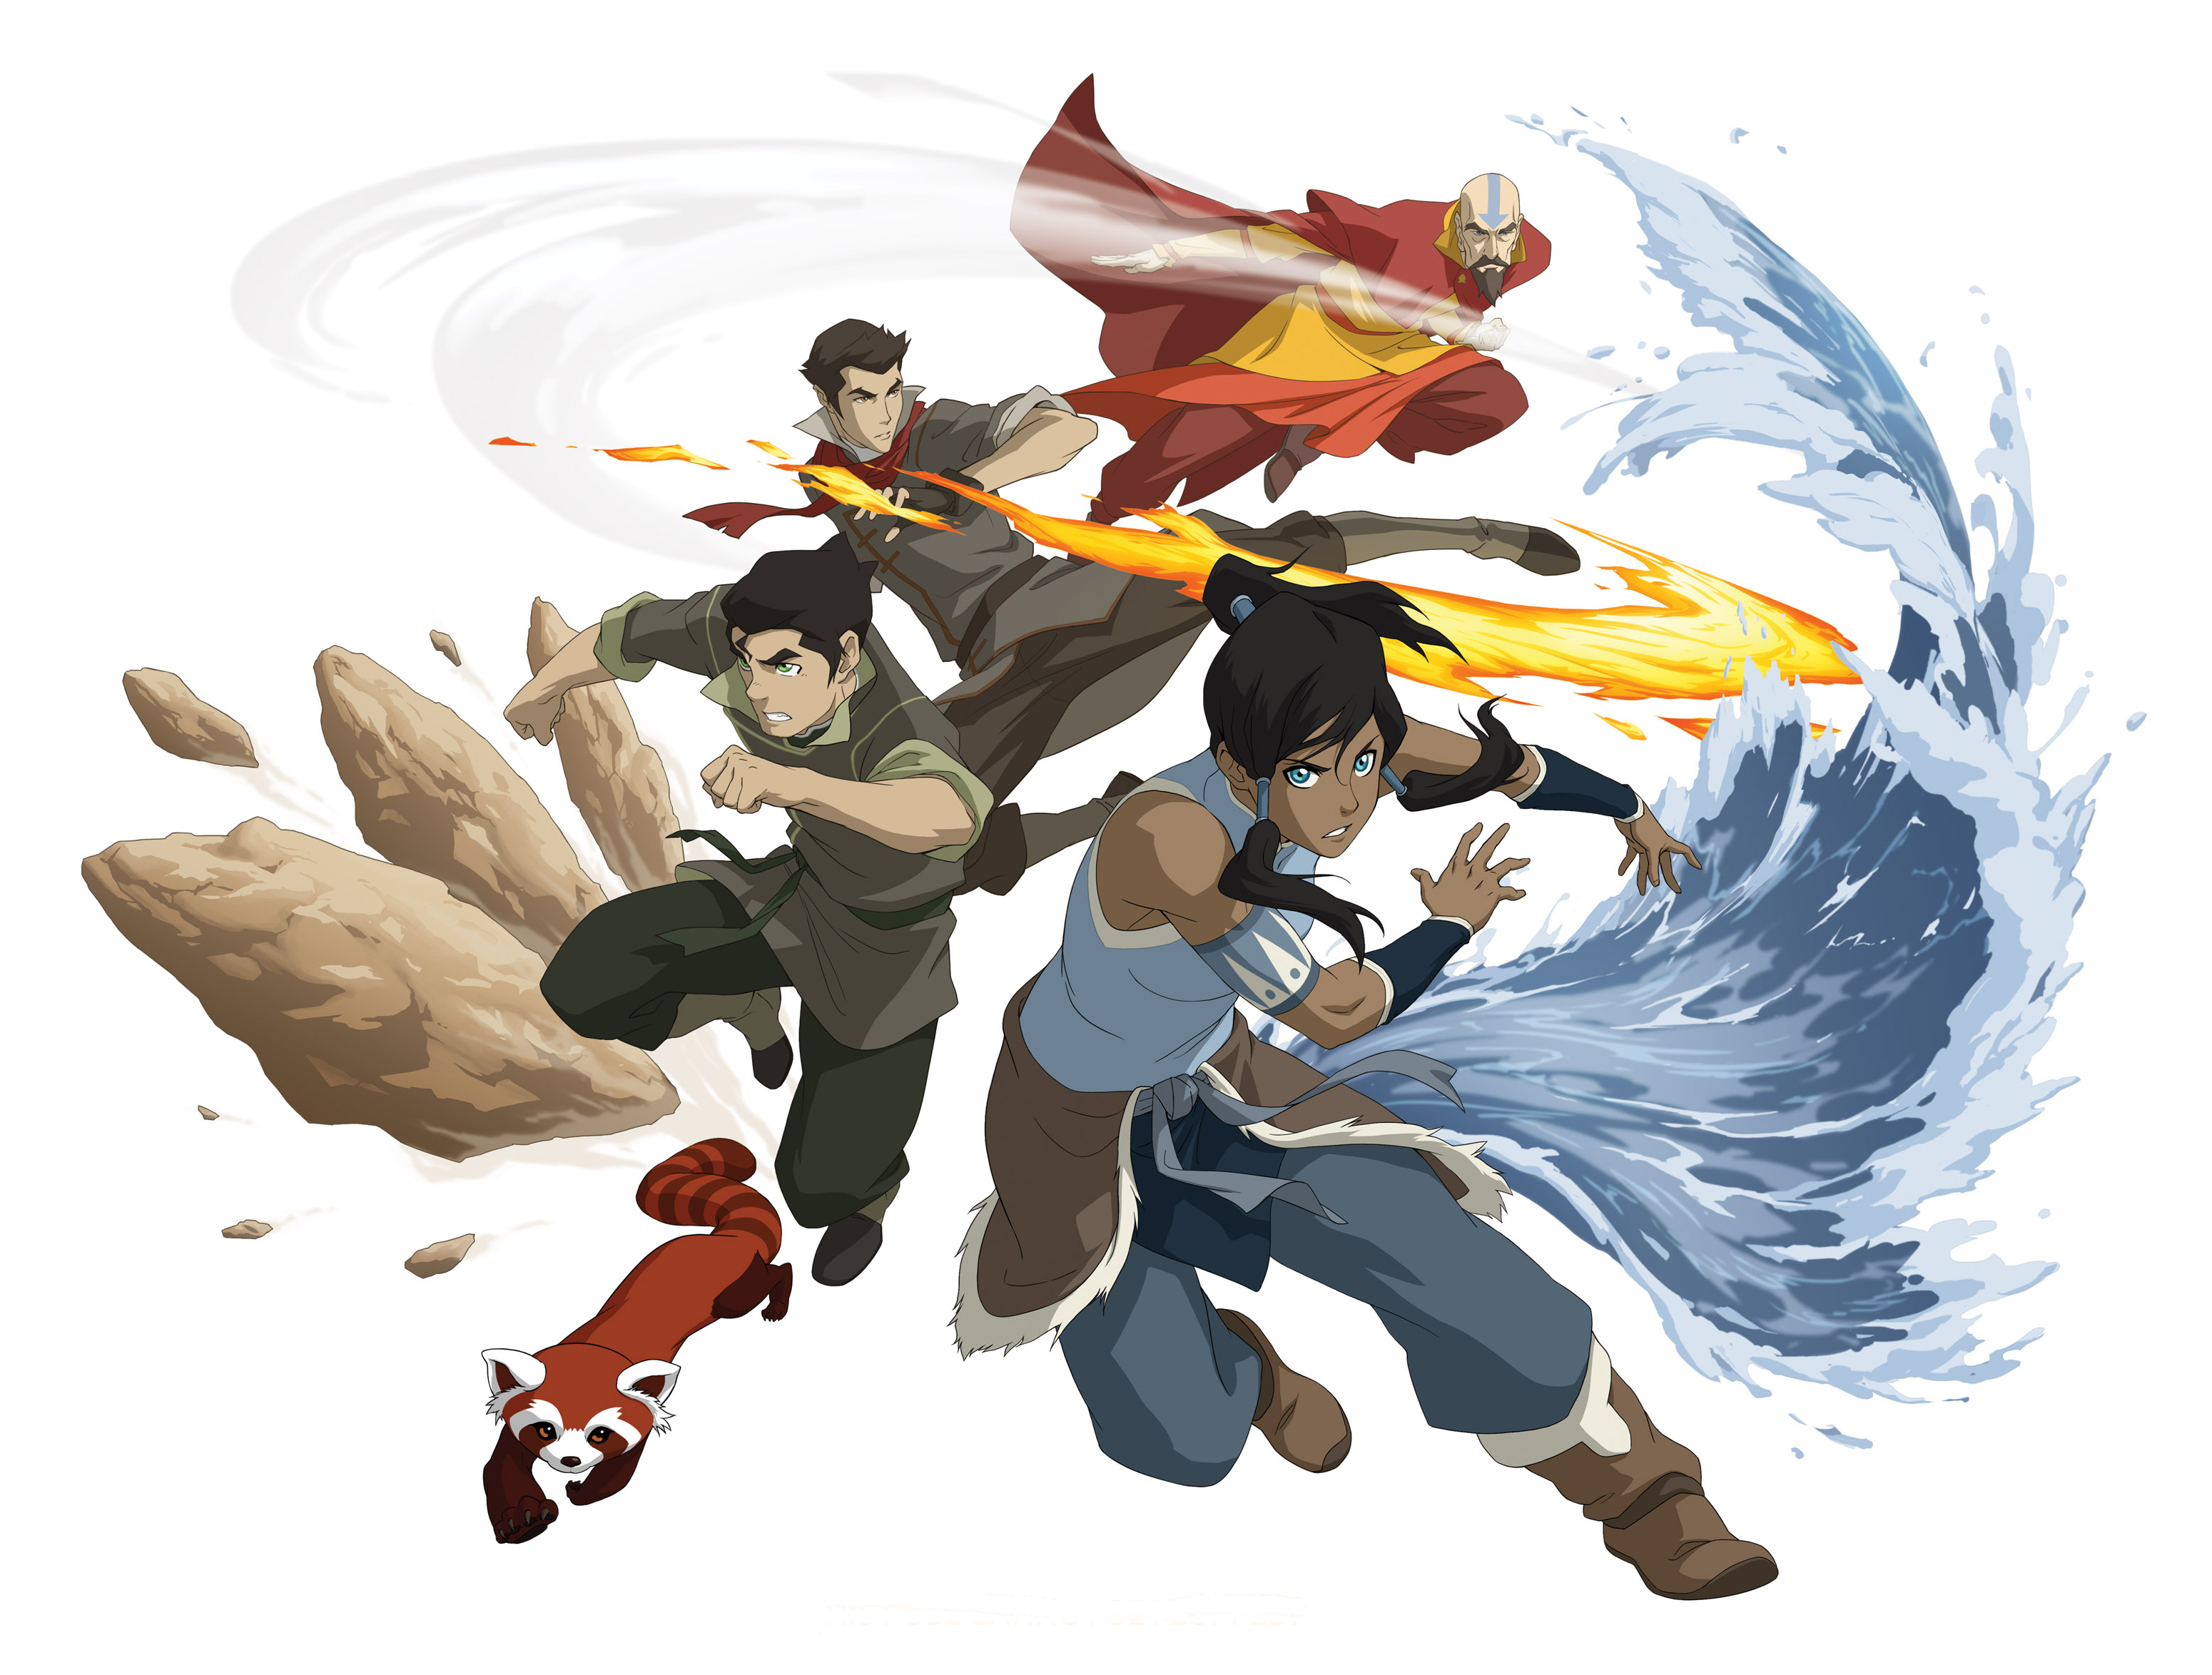 Korra: The Next Airbender! | Animation Magazine: www.animationmagazine.net/tv/korra-the-next-airbender